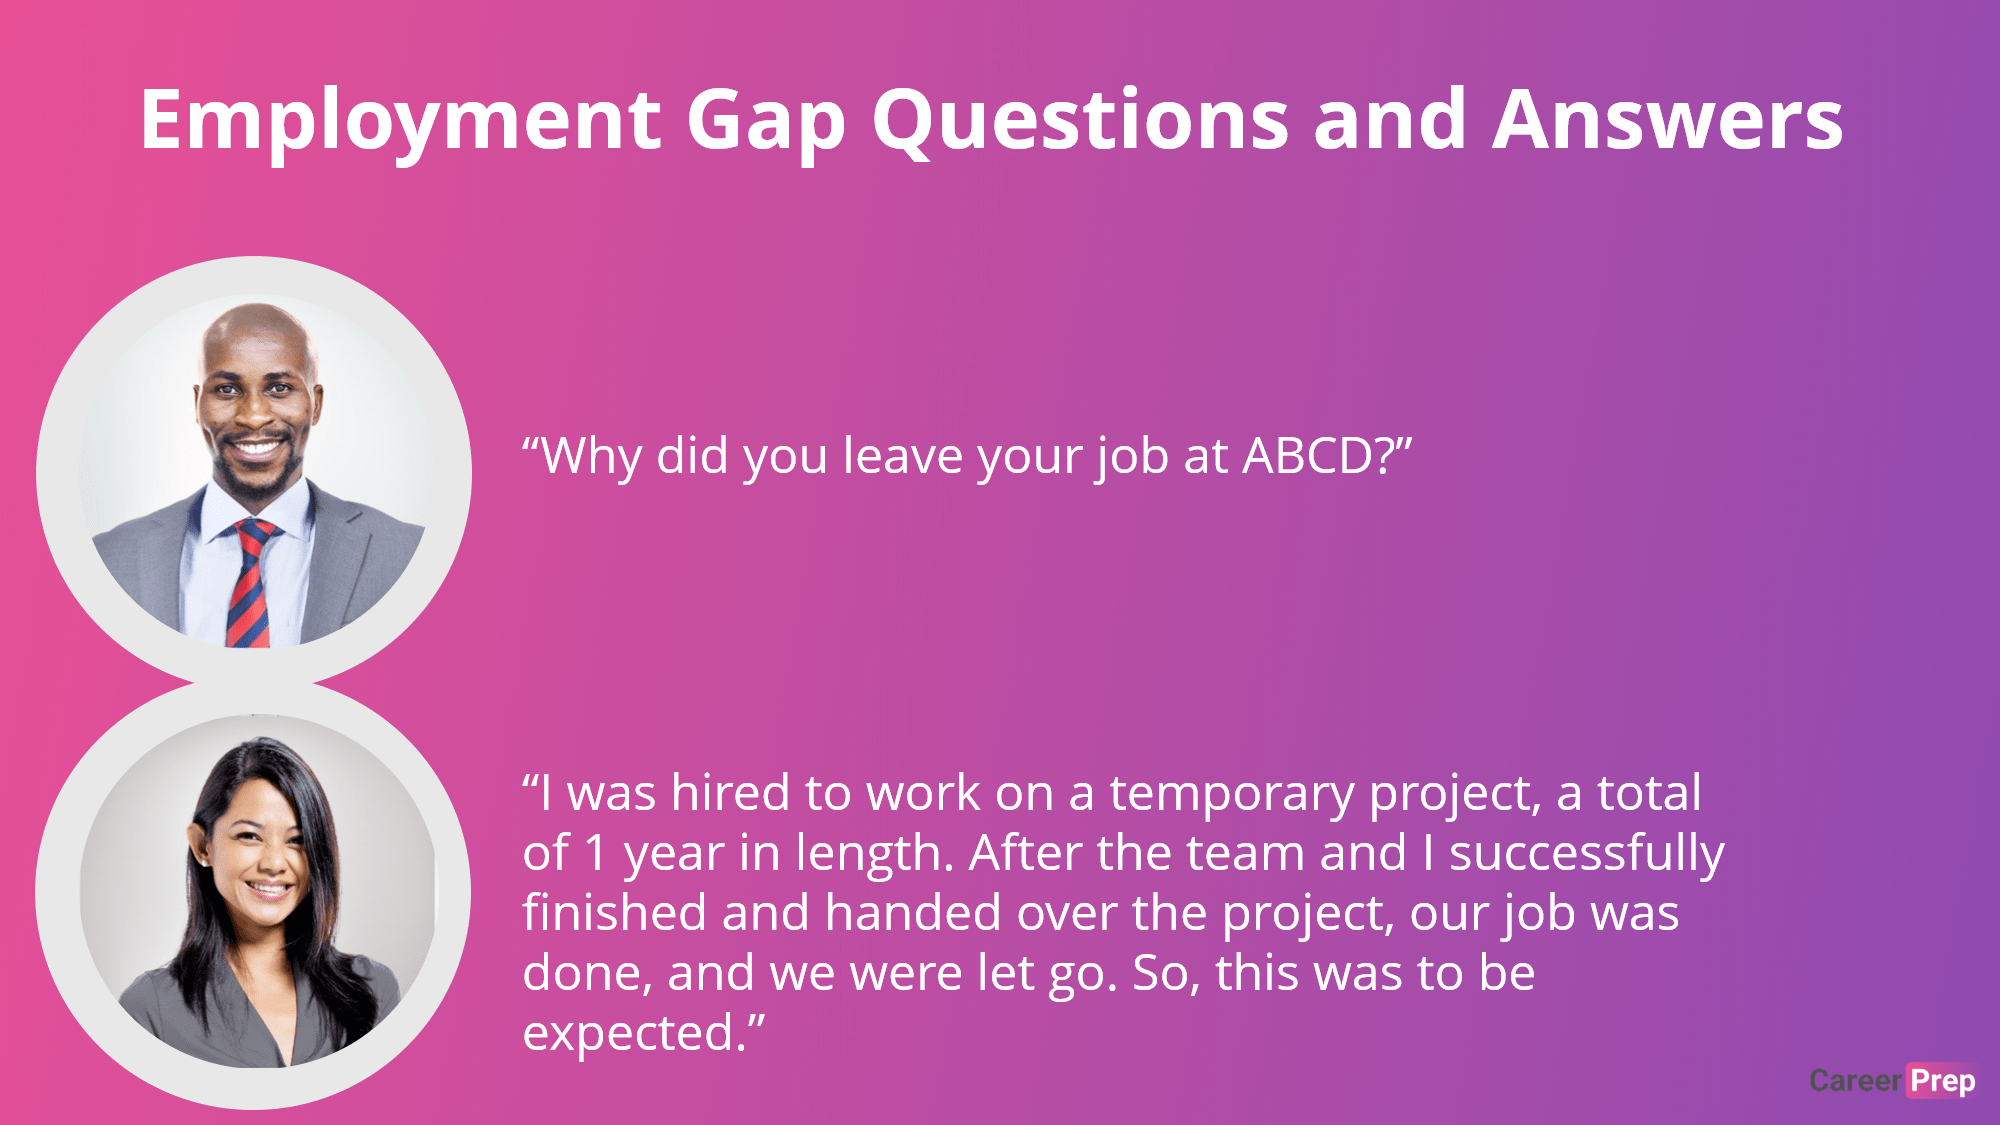 Employment Gap Question and Answer